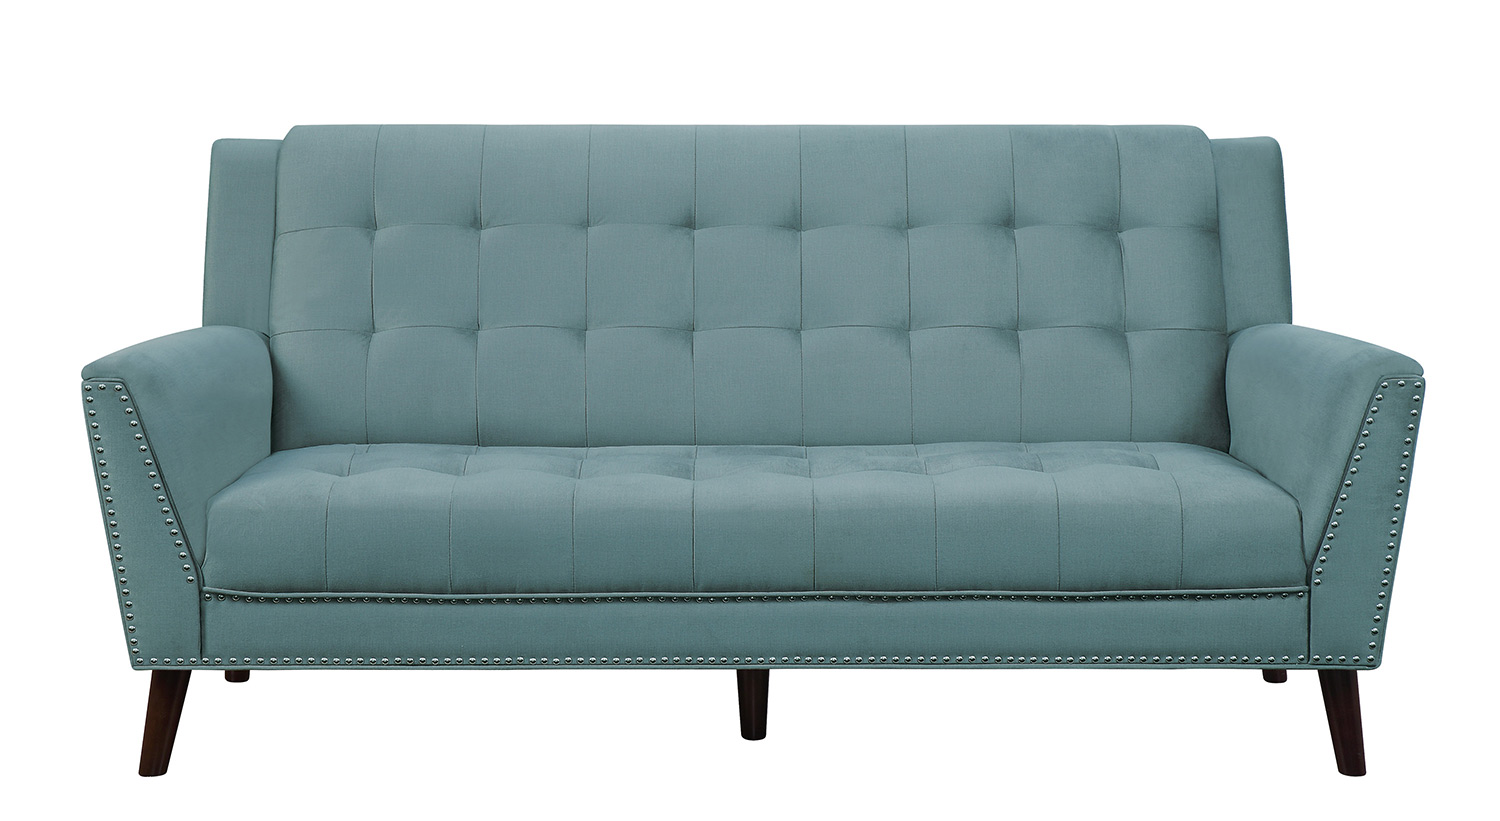 Homelegance Broadview Sofa - Fog gray